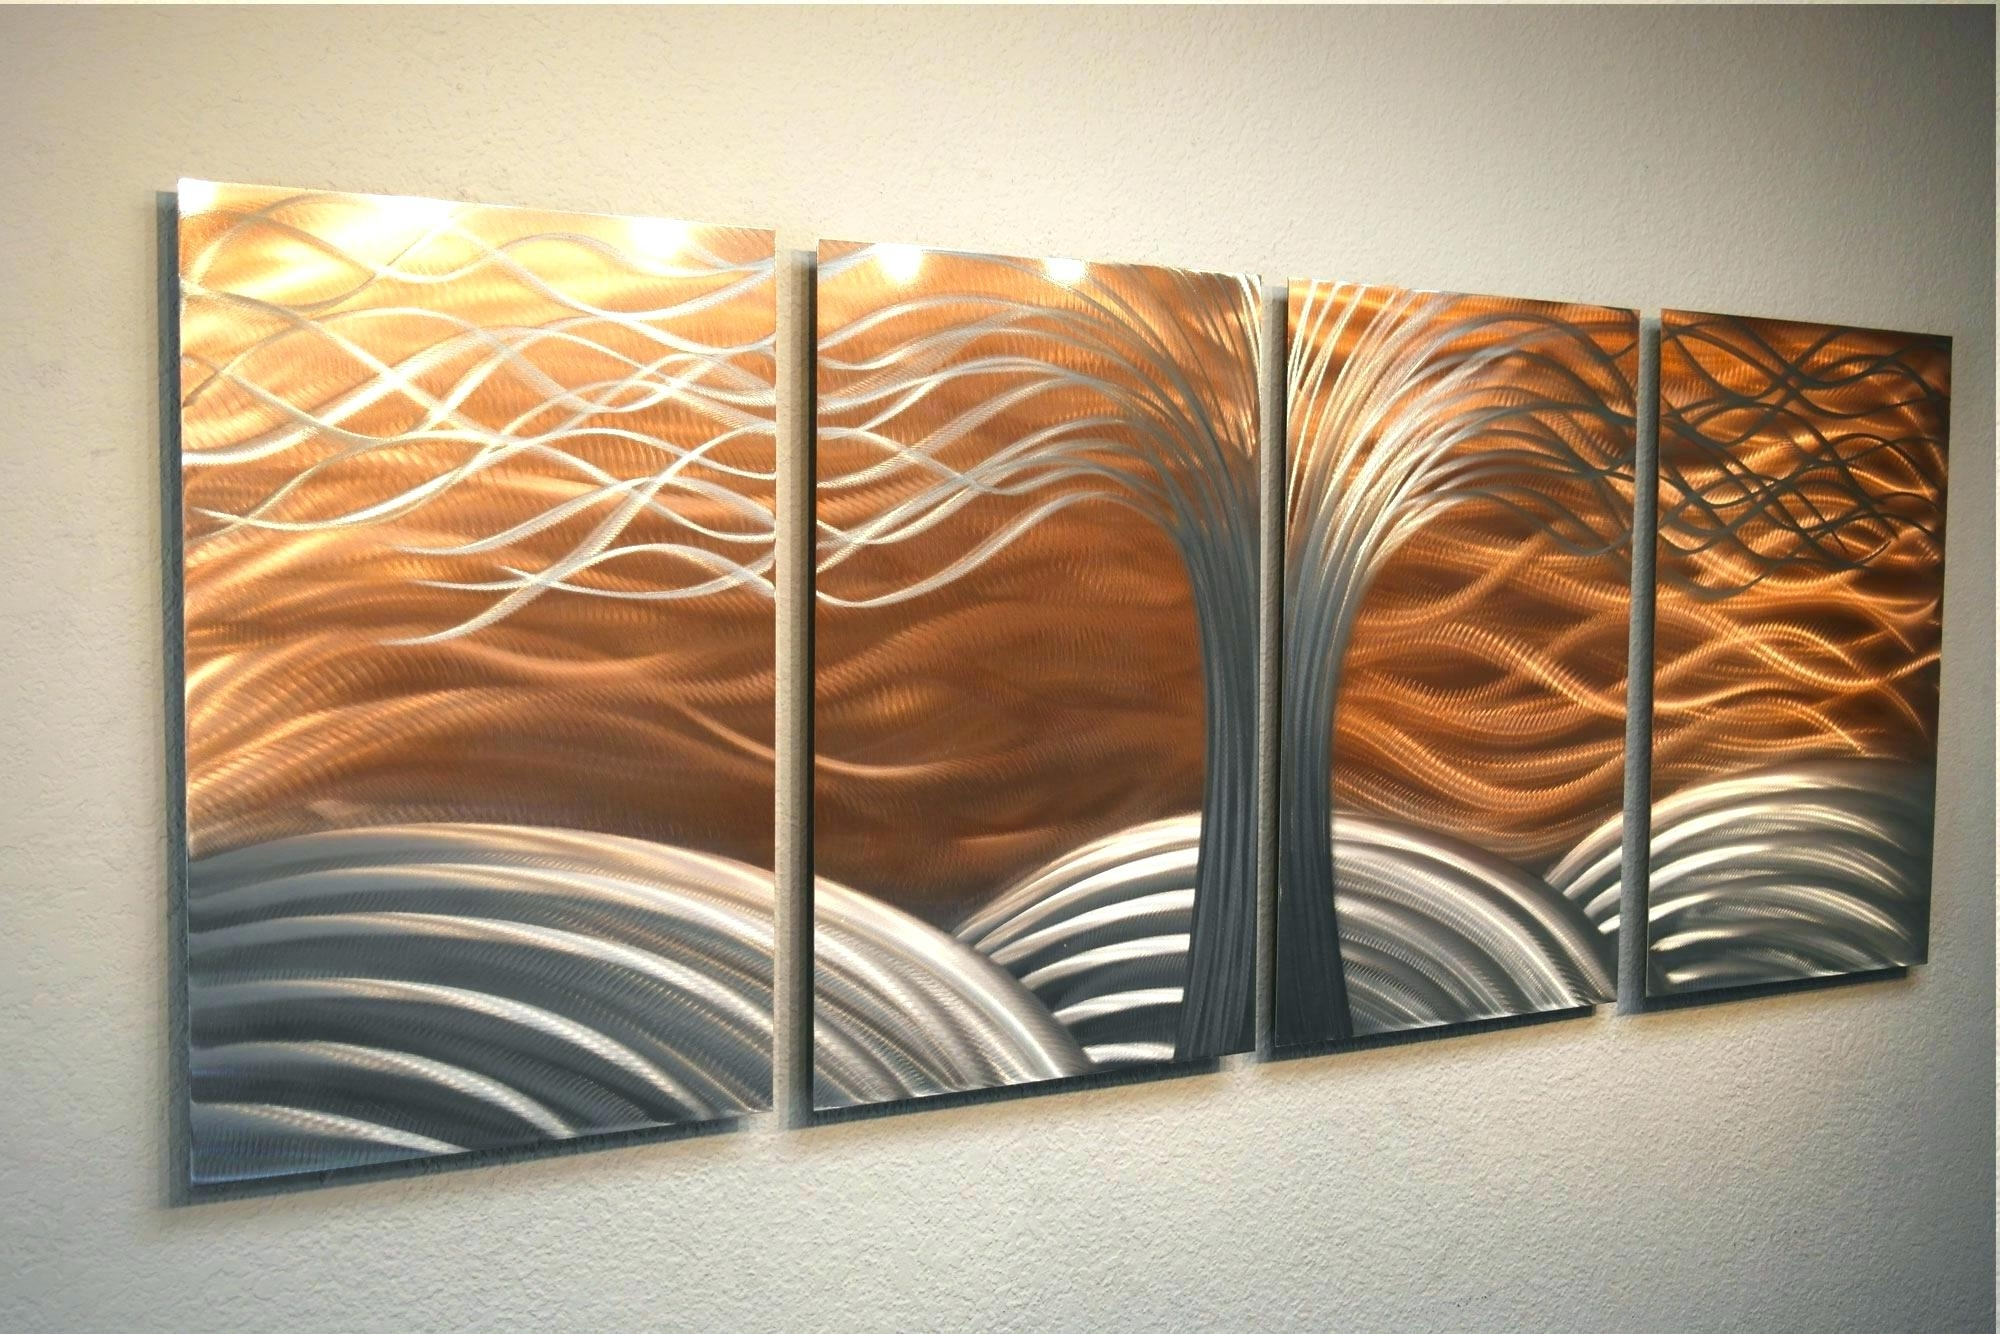 Abstract Metal Wall Art Australia Regarding Favorite Wall Arts ~ Modern Metal Wall Art Australia Modern Metal Wall Art (View 3 of 15)